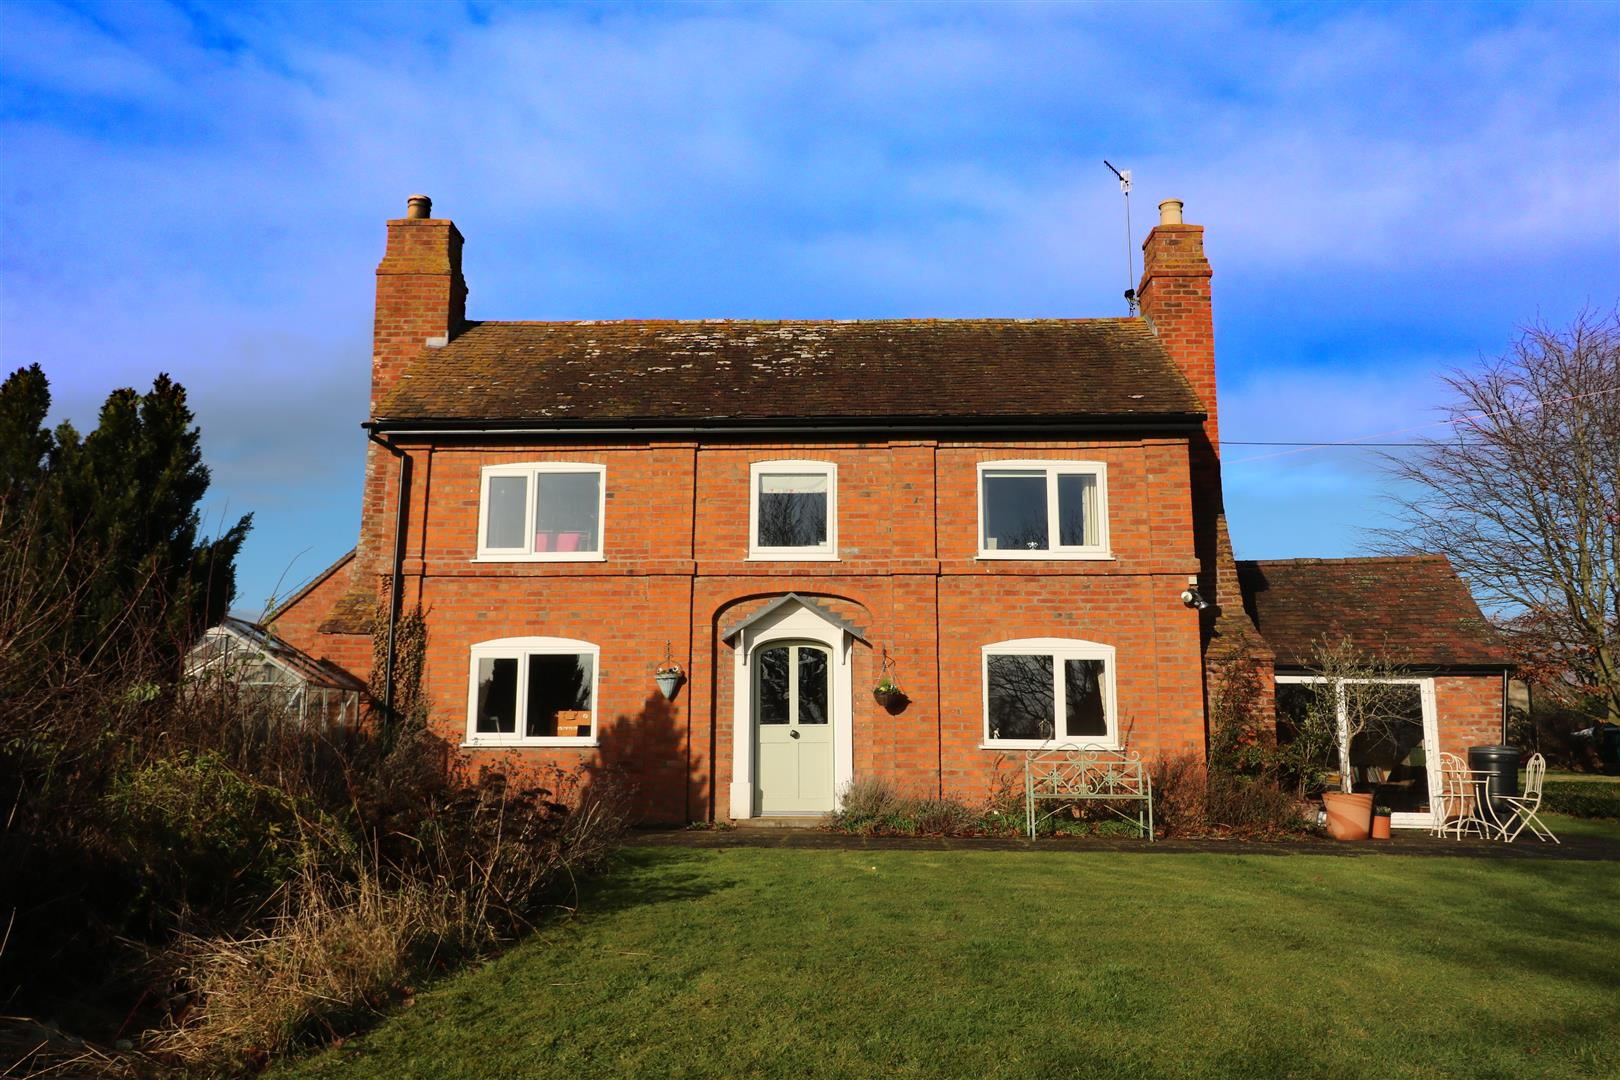 4 Bedrooms House for sale in Crowcroft, Leigh Sinton, Malvern